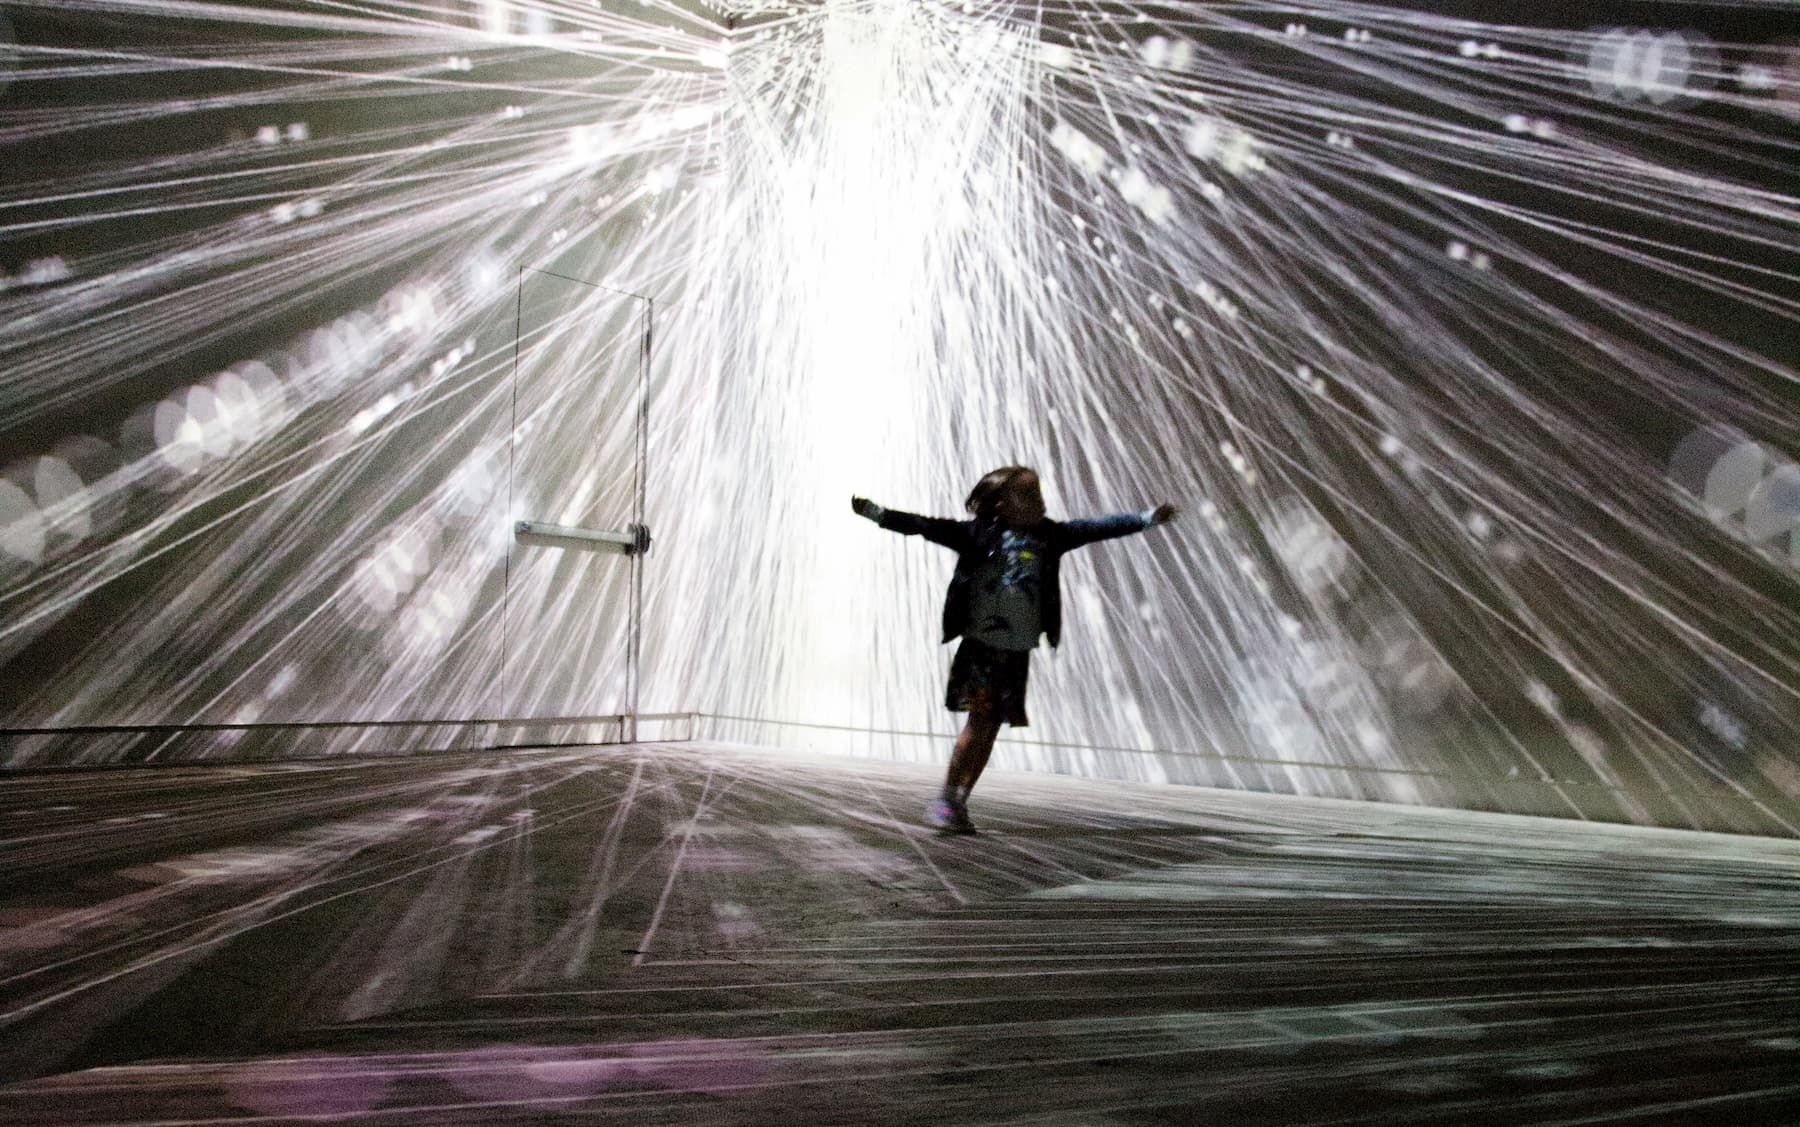 A boy running with arms outstretched in space where lighted wires stretch out in all directions from above